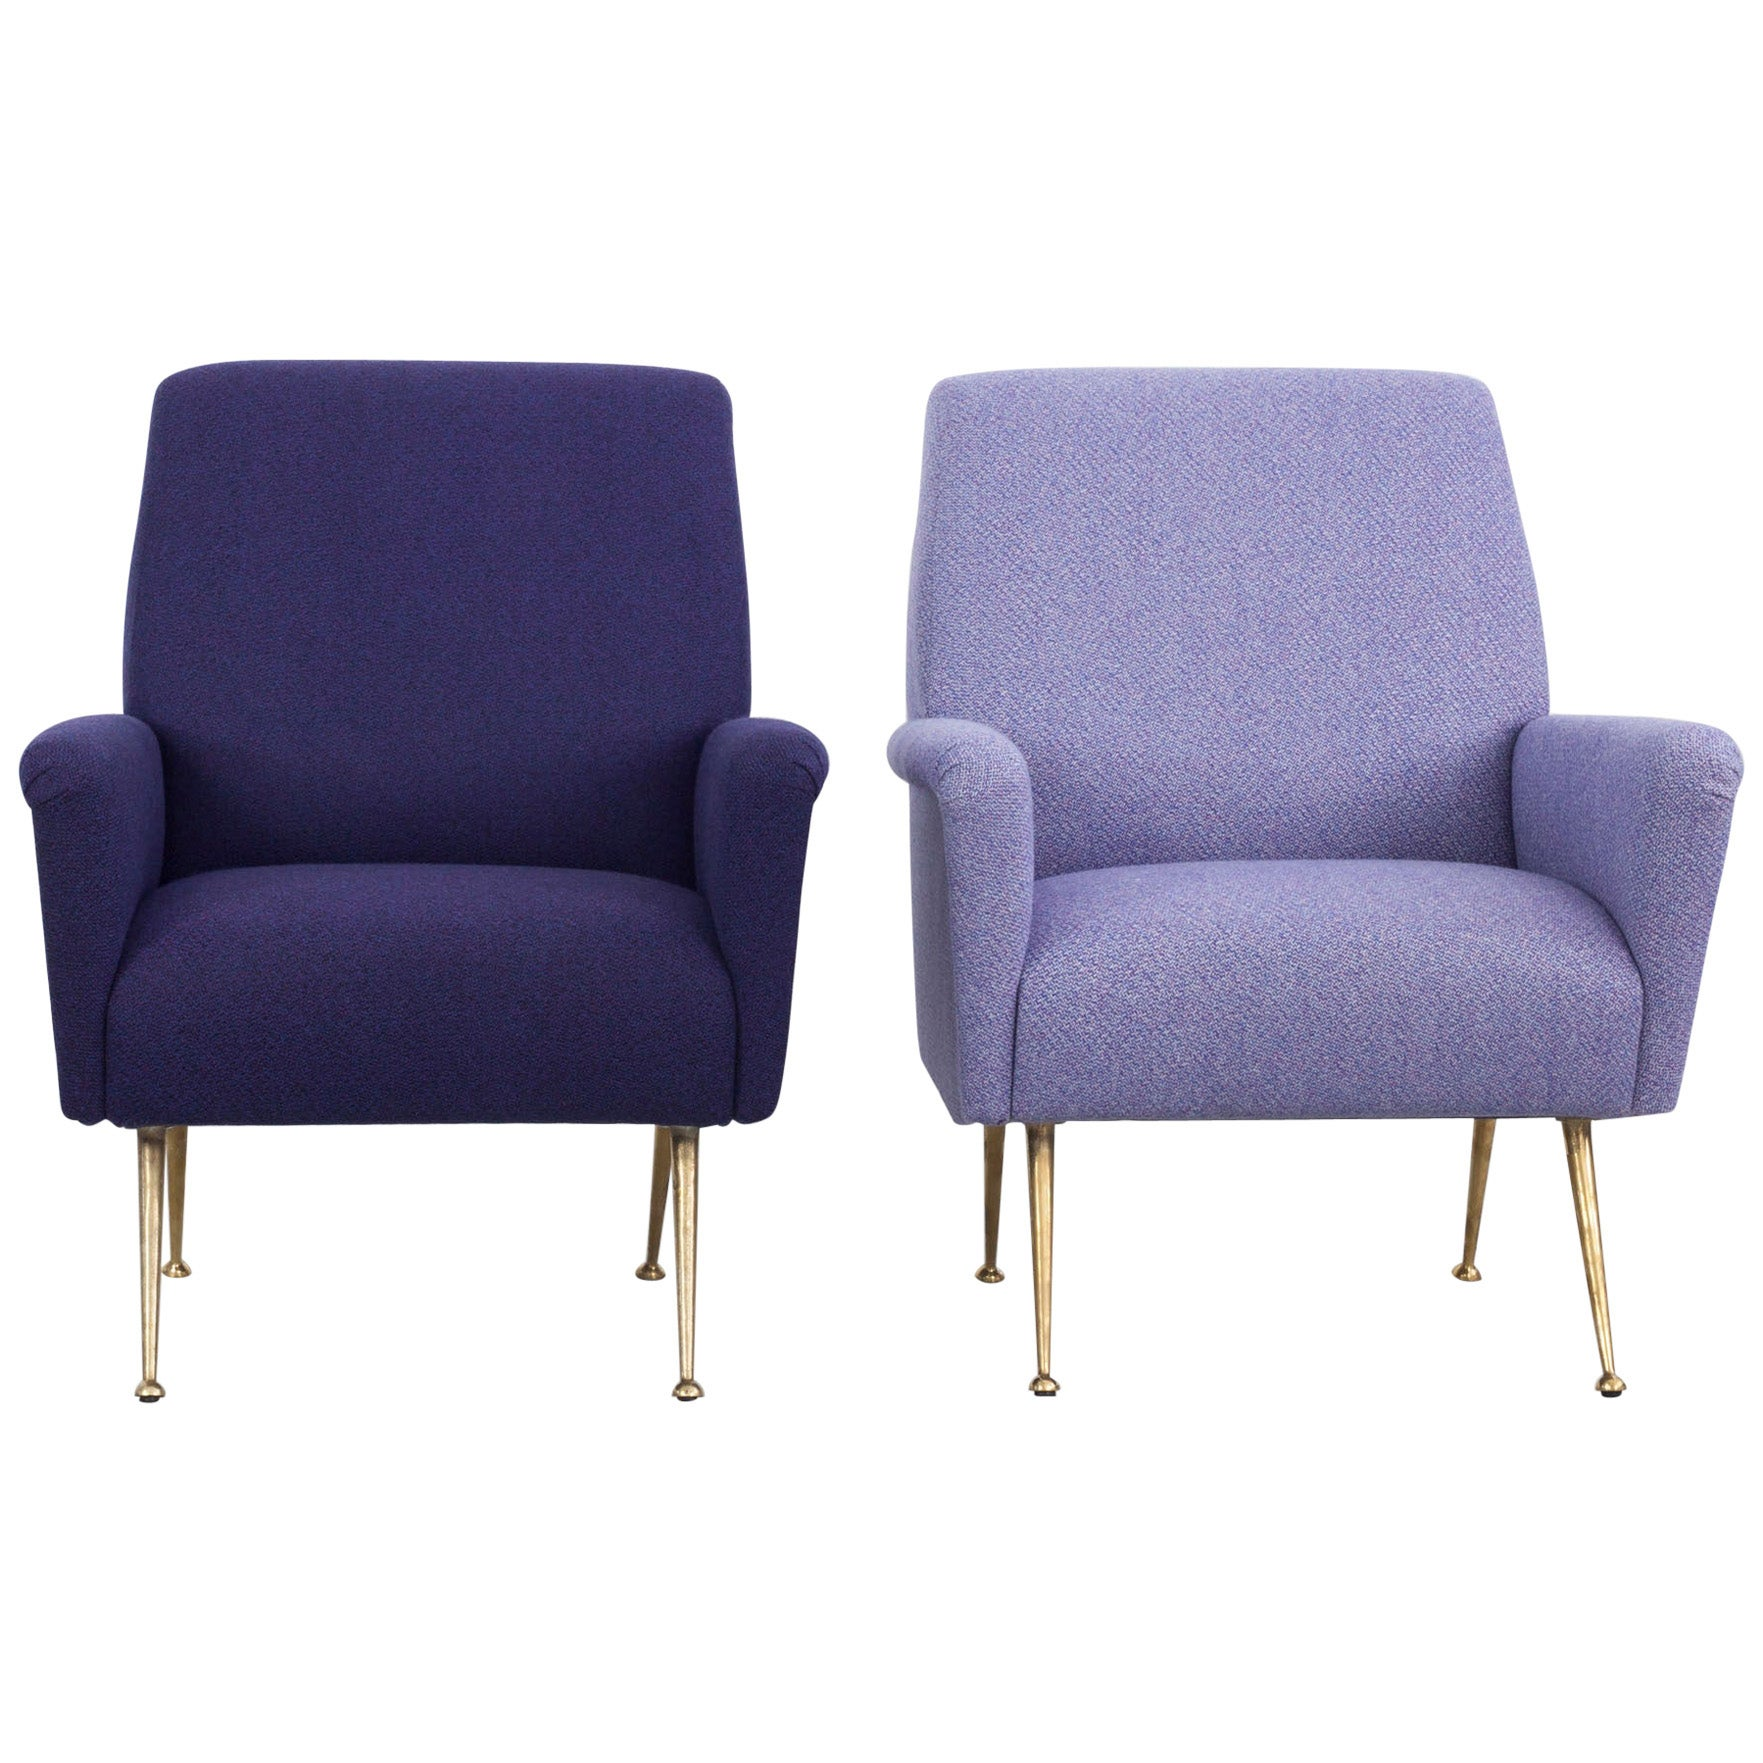 Pair of Reupholstered Italian Armchairs, Italy, 1950s